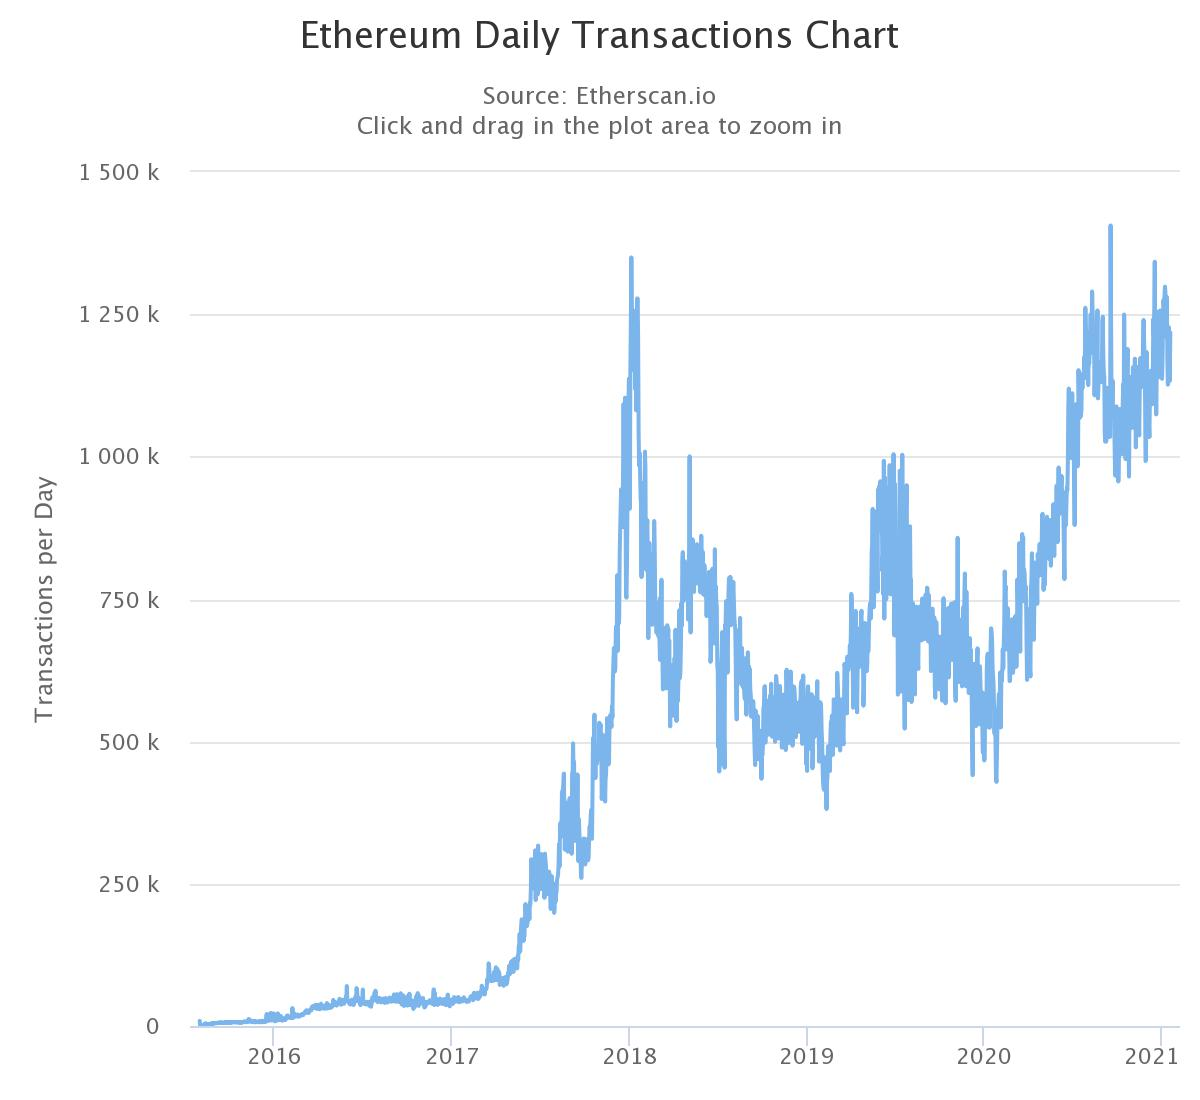 Ethereum daily transactions chart. Source: Etherscan.io